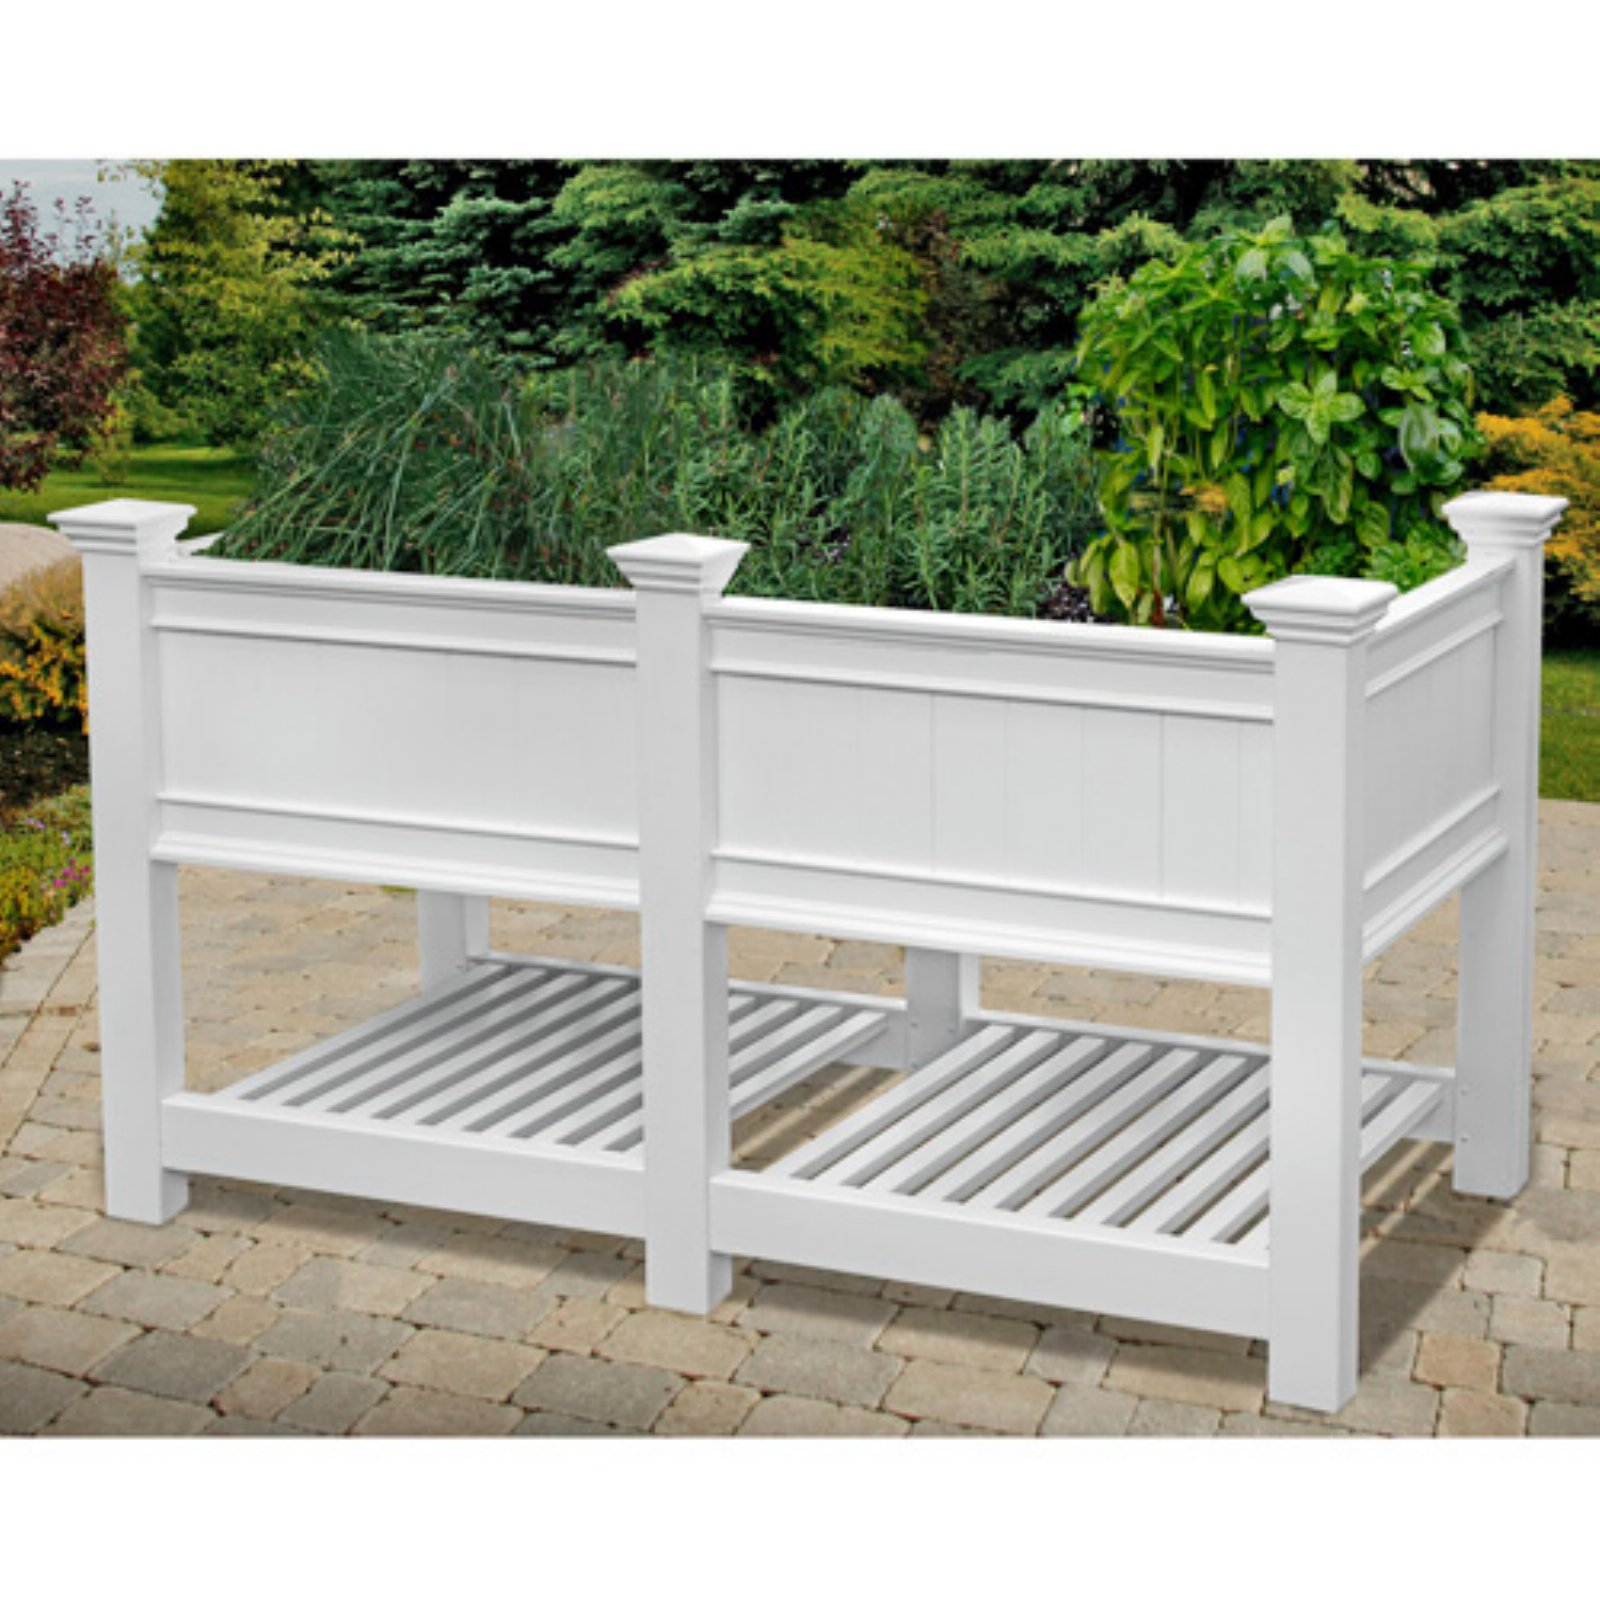 New England Arbors Cambridge Raised Planter and Extension Kit by New England Arbors